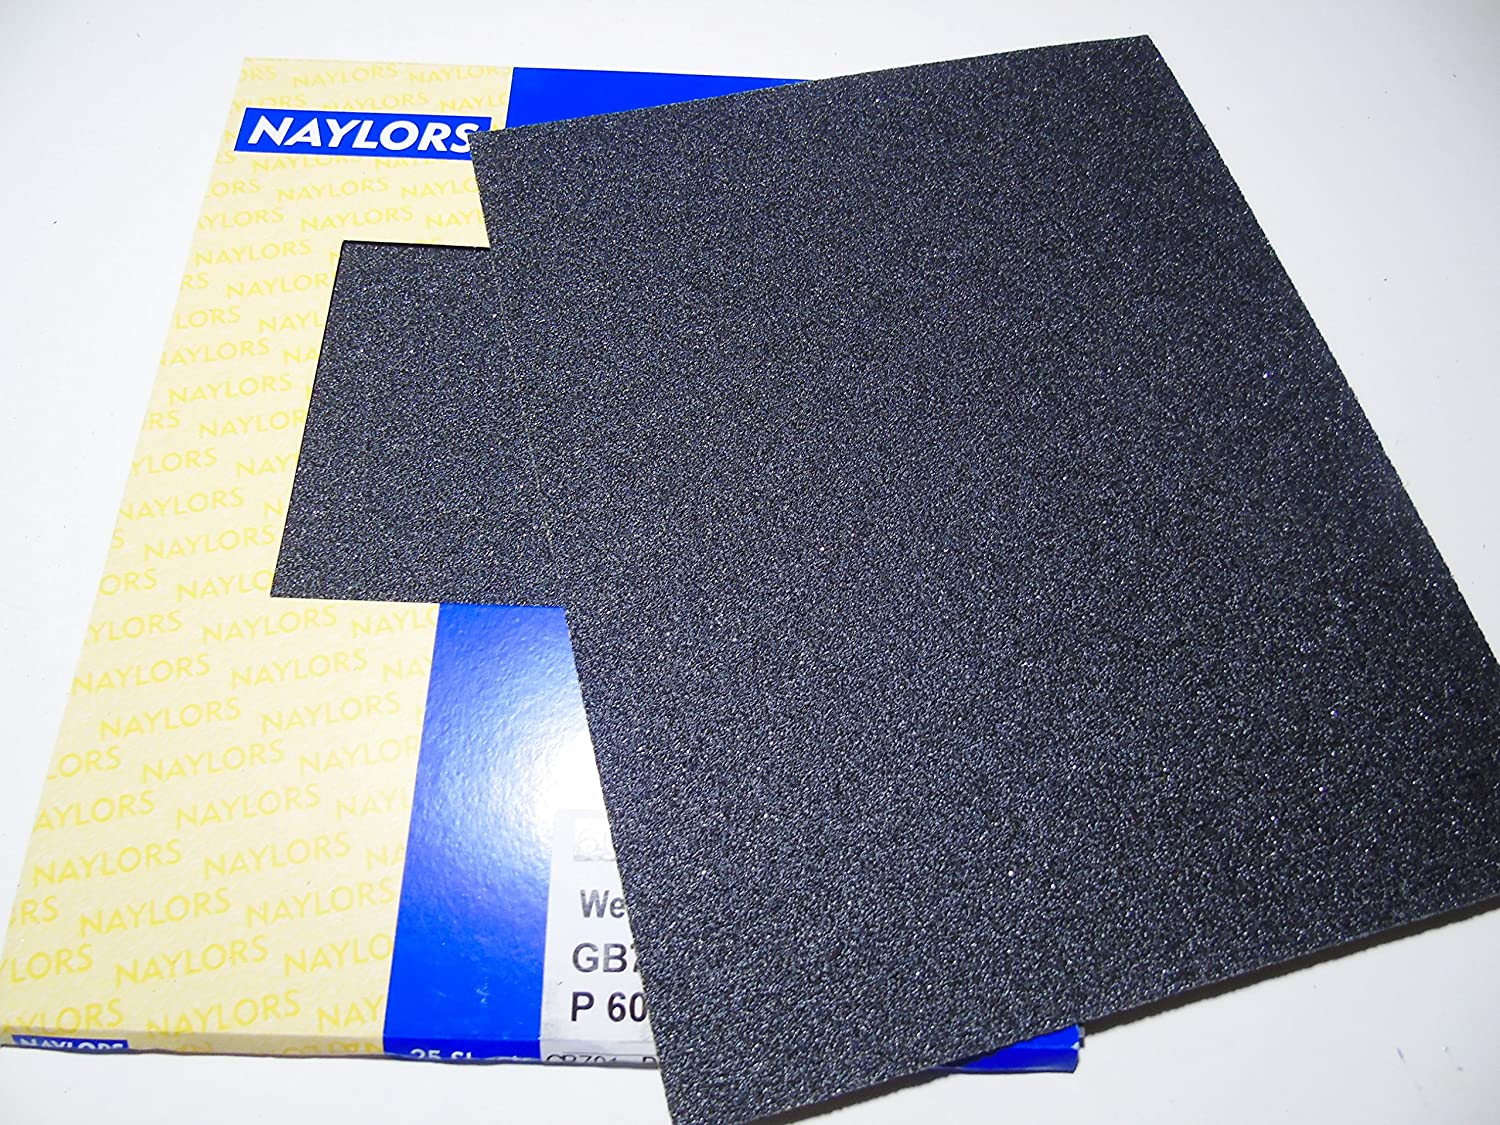 10 x Wet and dry Sandpaper Sheets waterproof Abrasive Coarse Grit 60 Quality Silicon Carbide Naylors